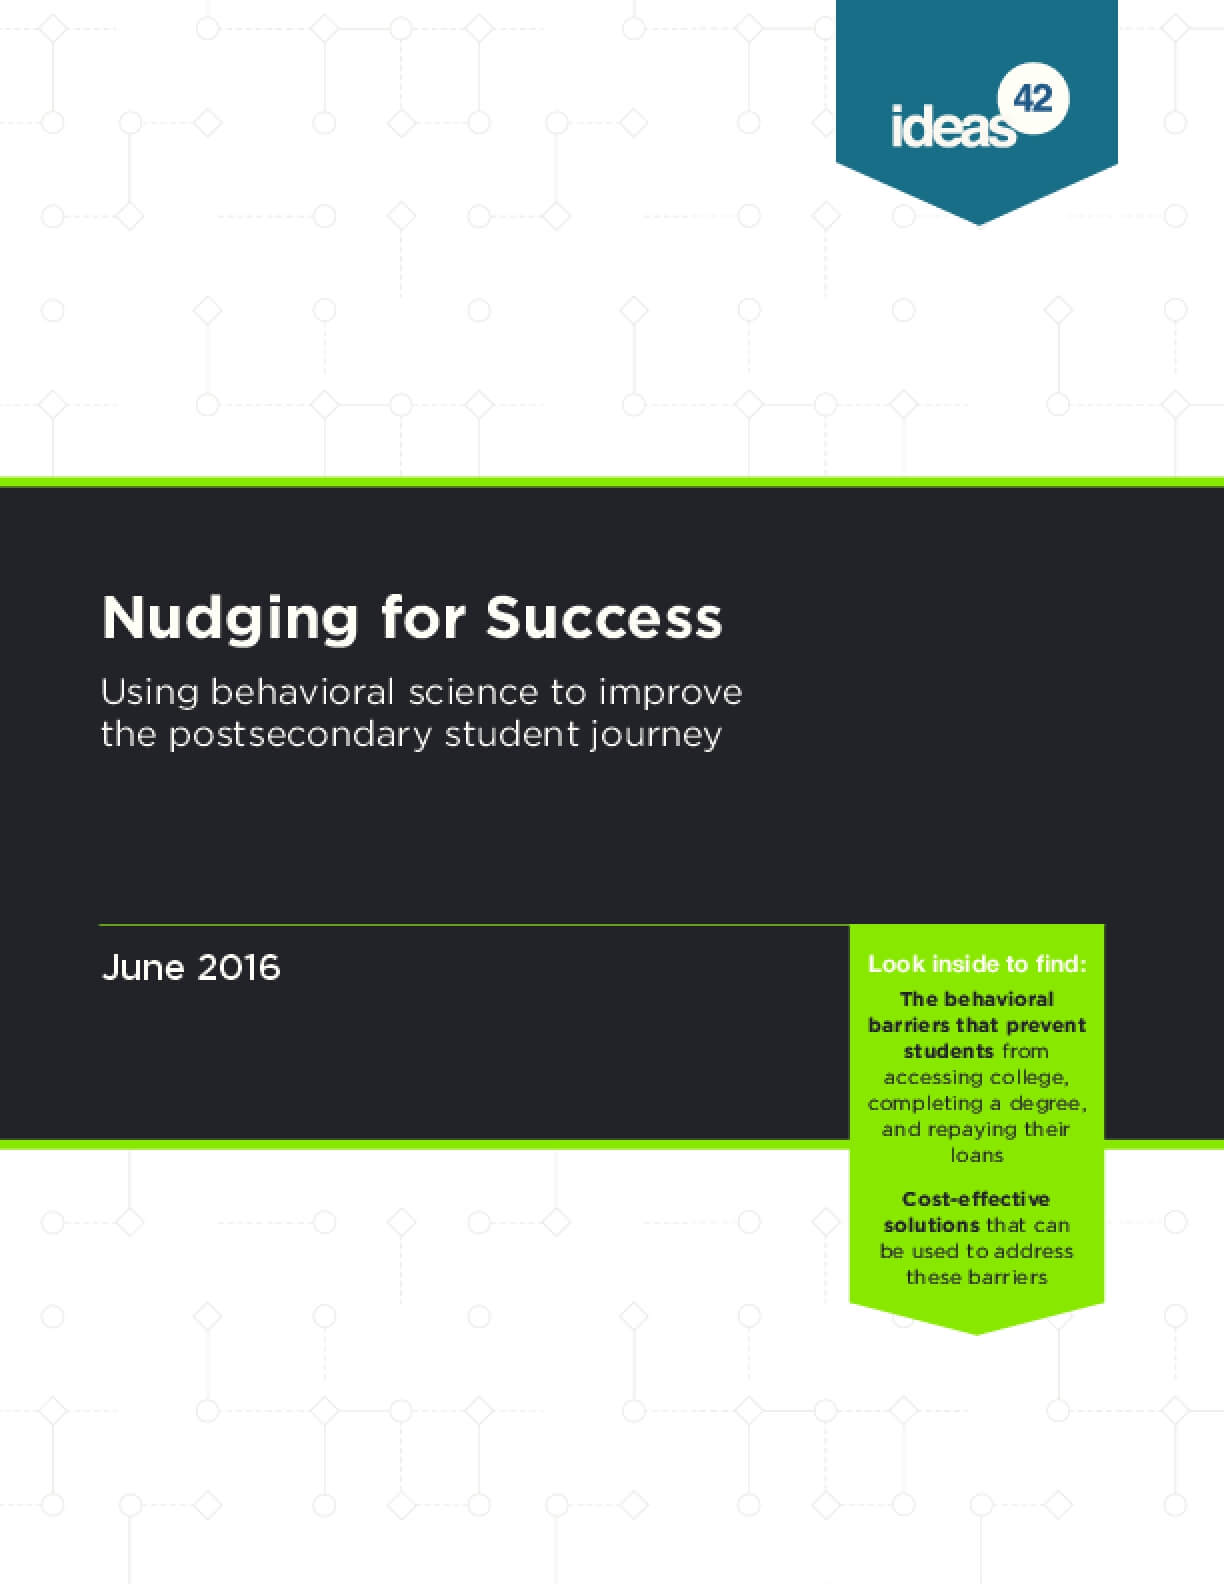 Nudging for Success: Using Behavioral Science to Improve the Postsecondary Student Journey